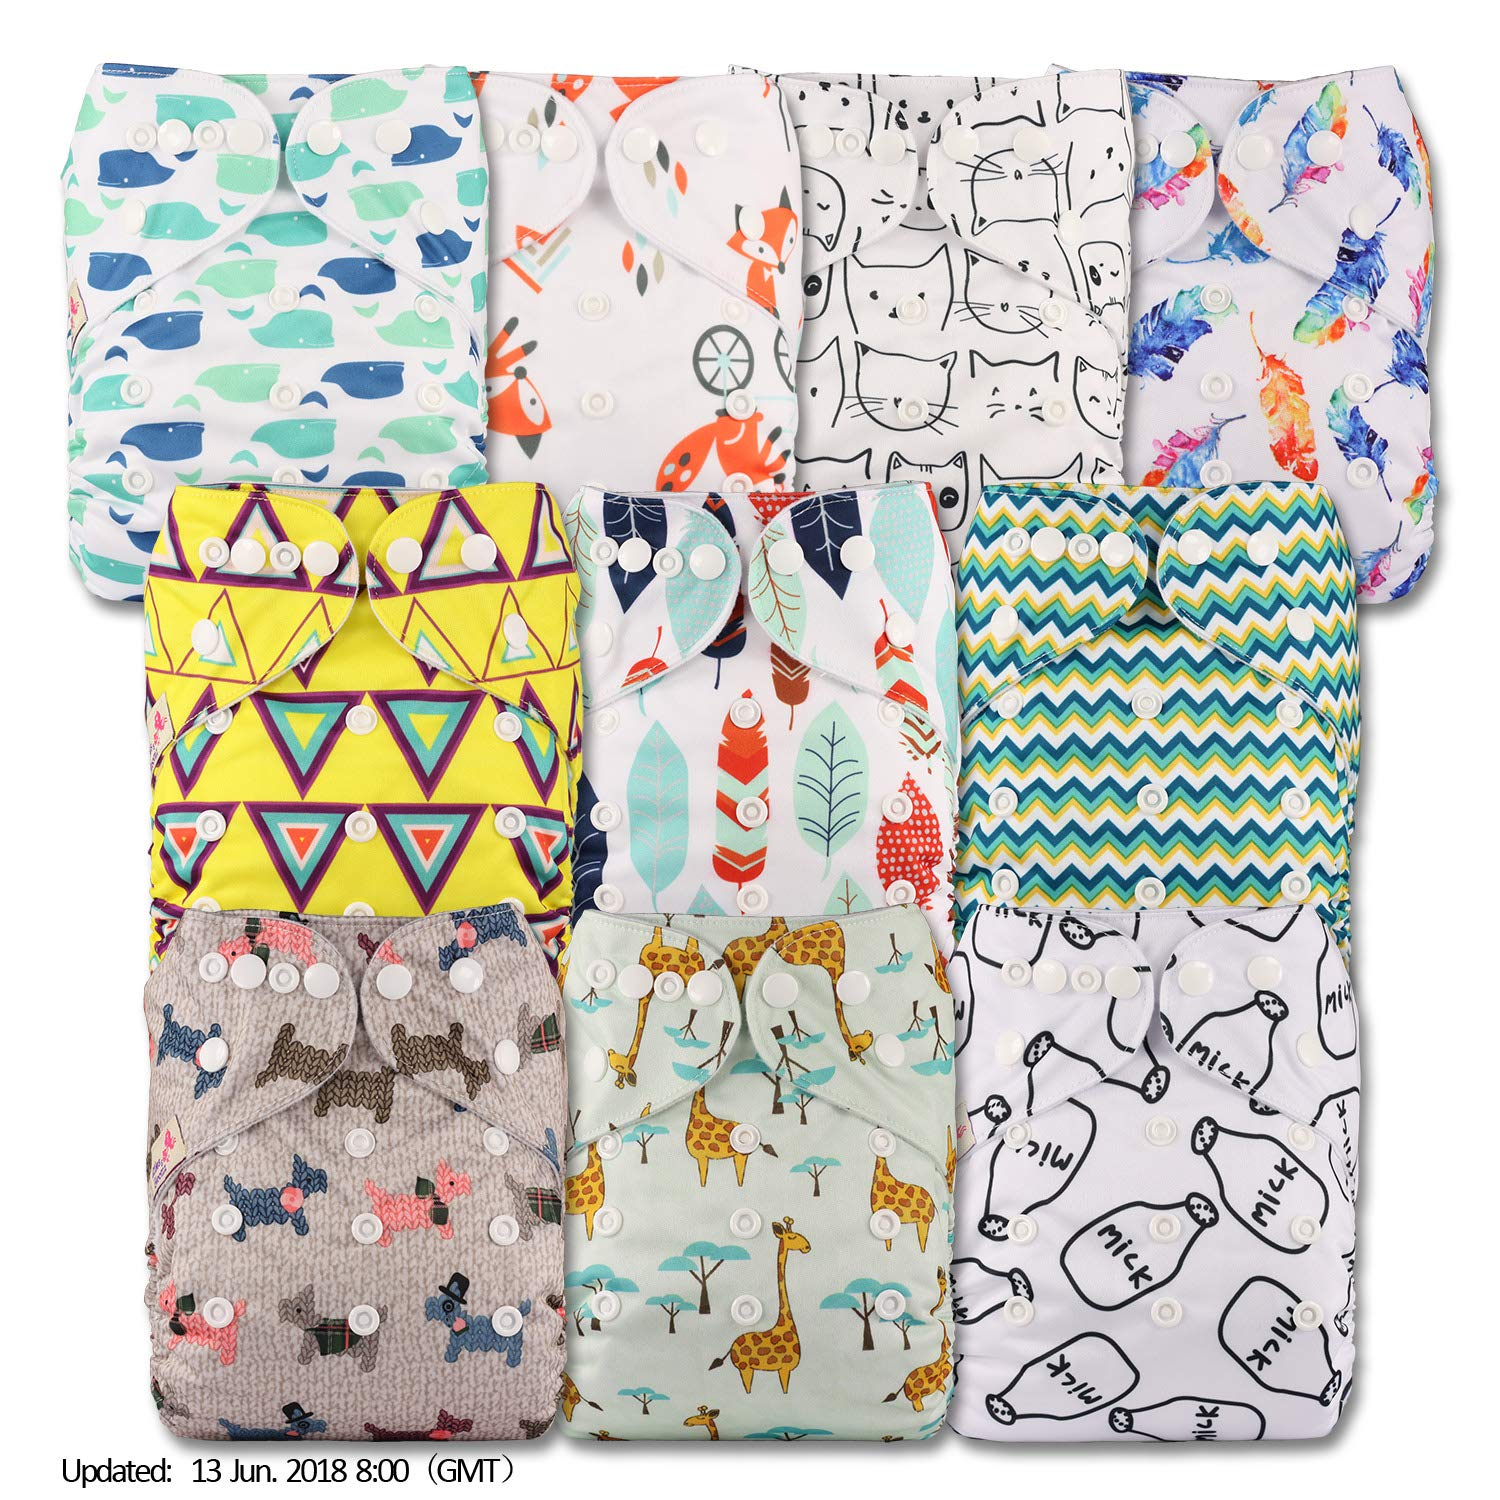 Fastener: Popper Pattern 16 Baby Cloth Washable Reusable Nappy Pocket Diaper Bamboo Littles /& Bloomz Without Insert